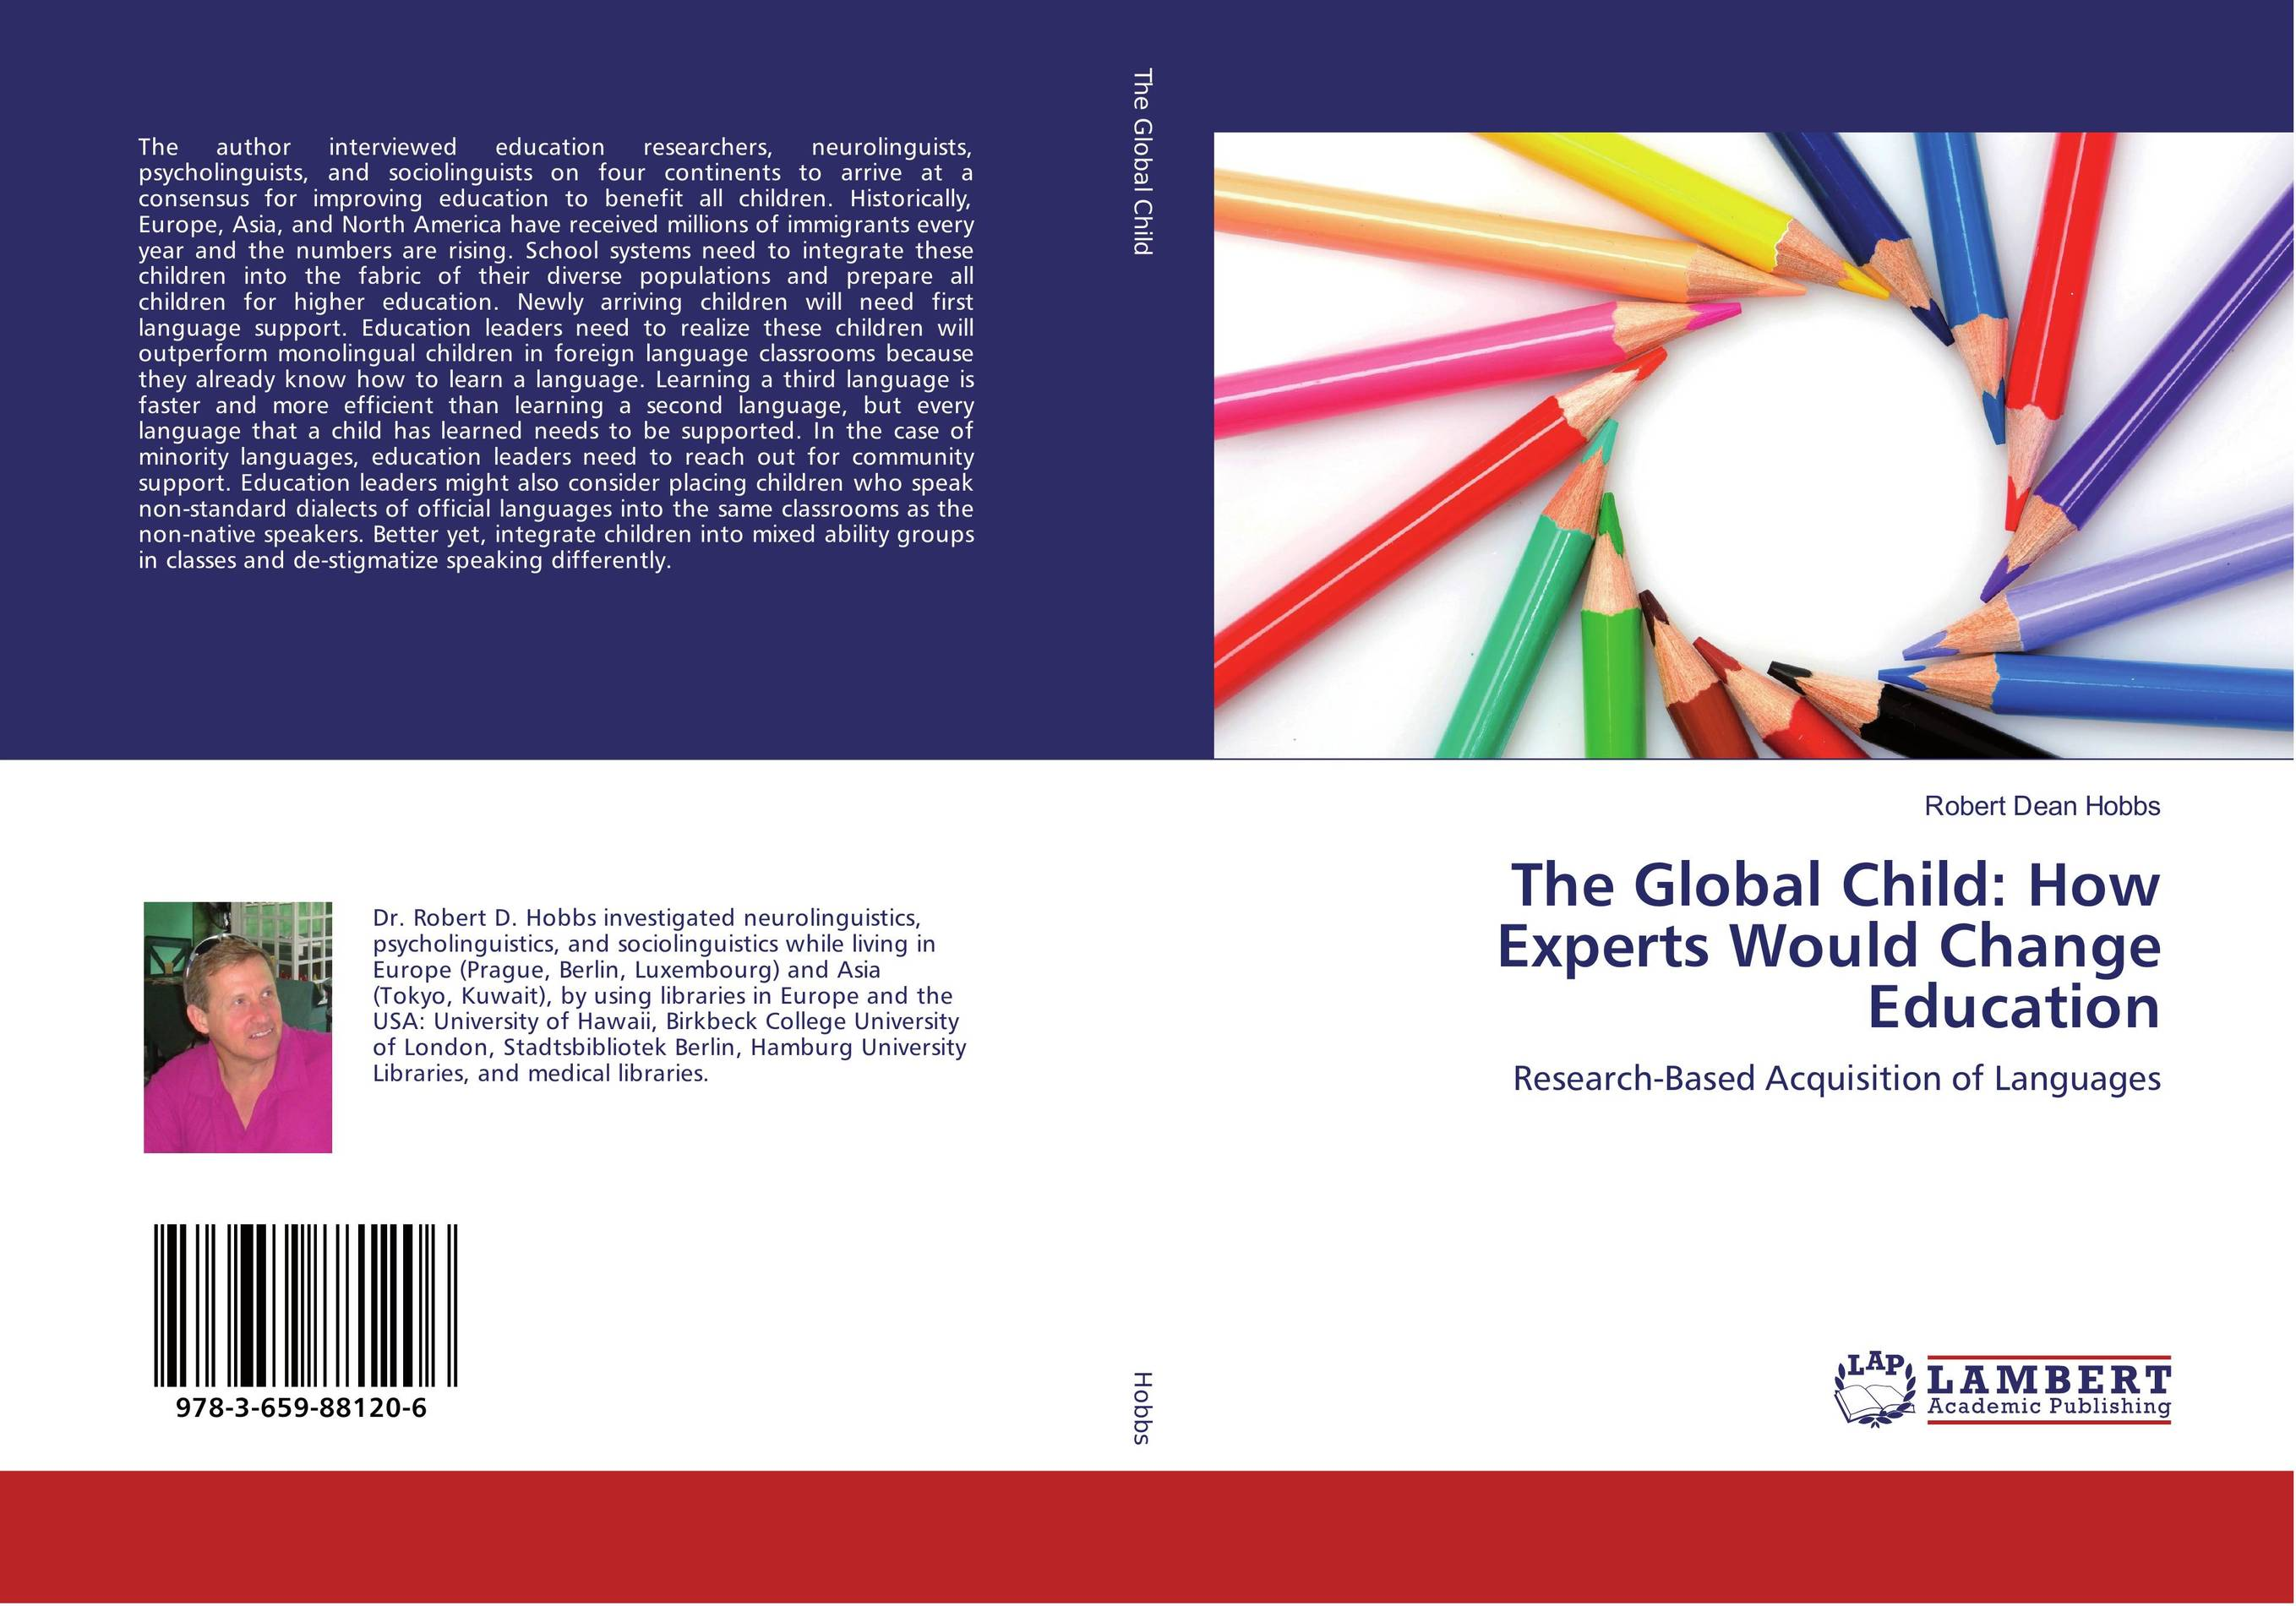 The Global Child: How Experts Would Change Education language change and lexical variation in youth language